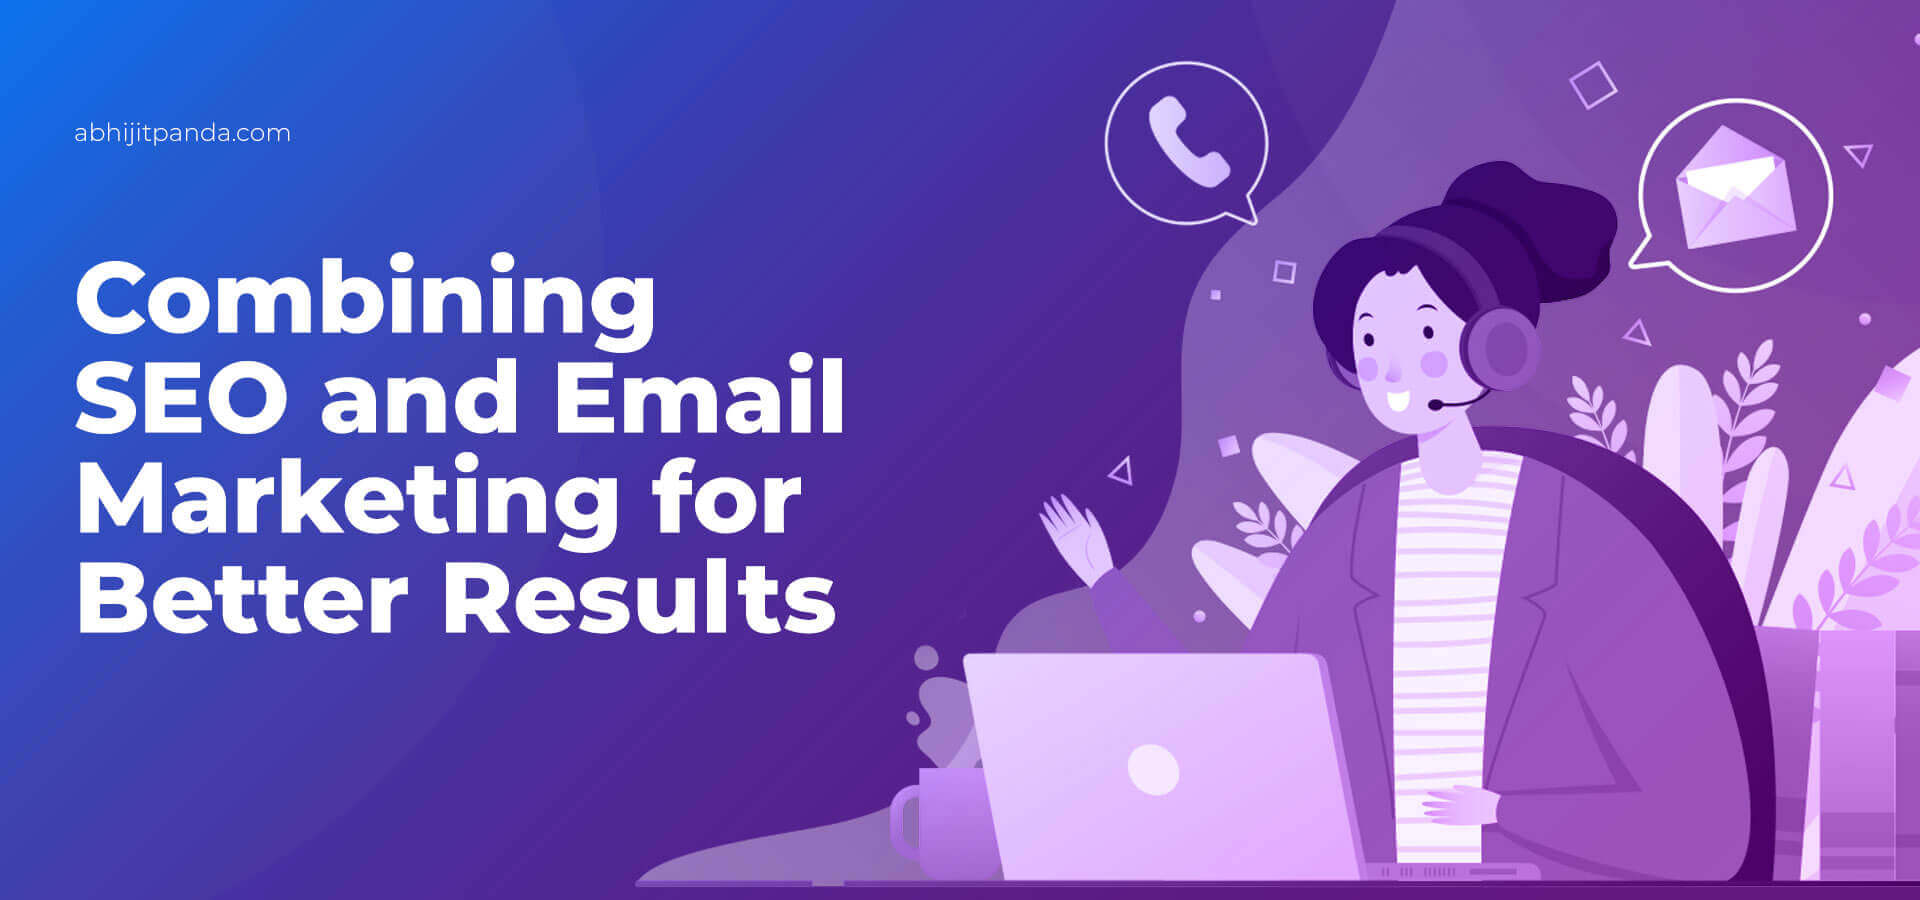 Combining SEO and Email Marketing for Better Results